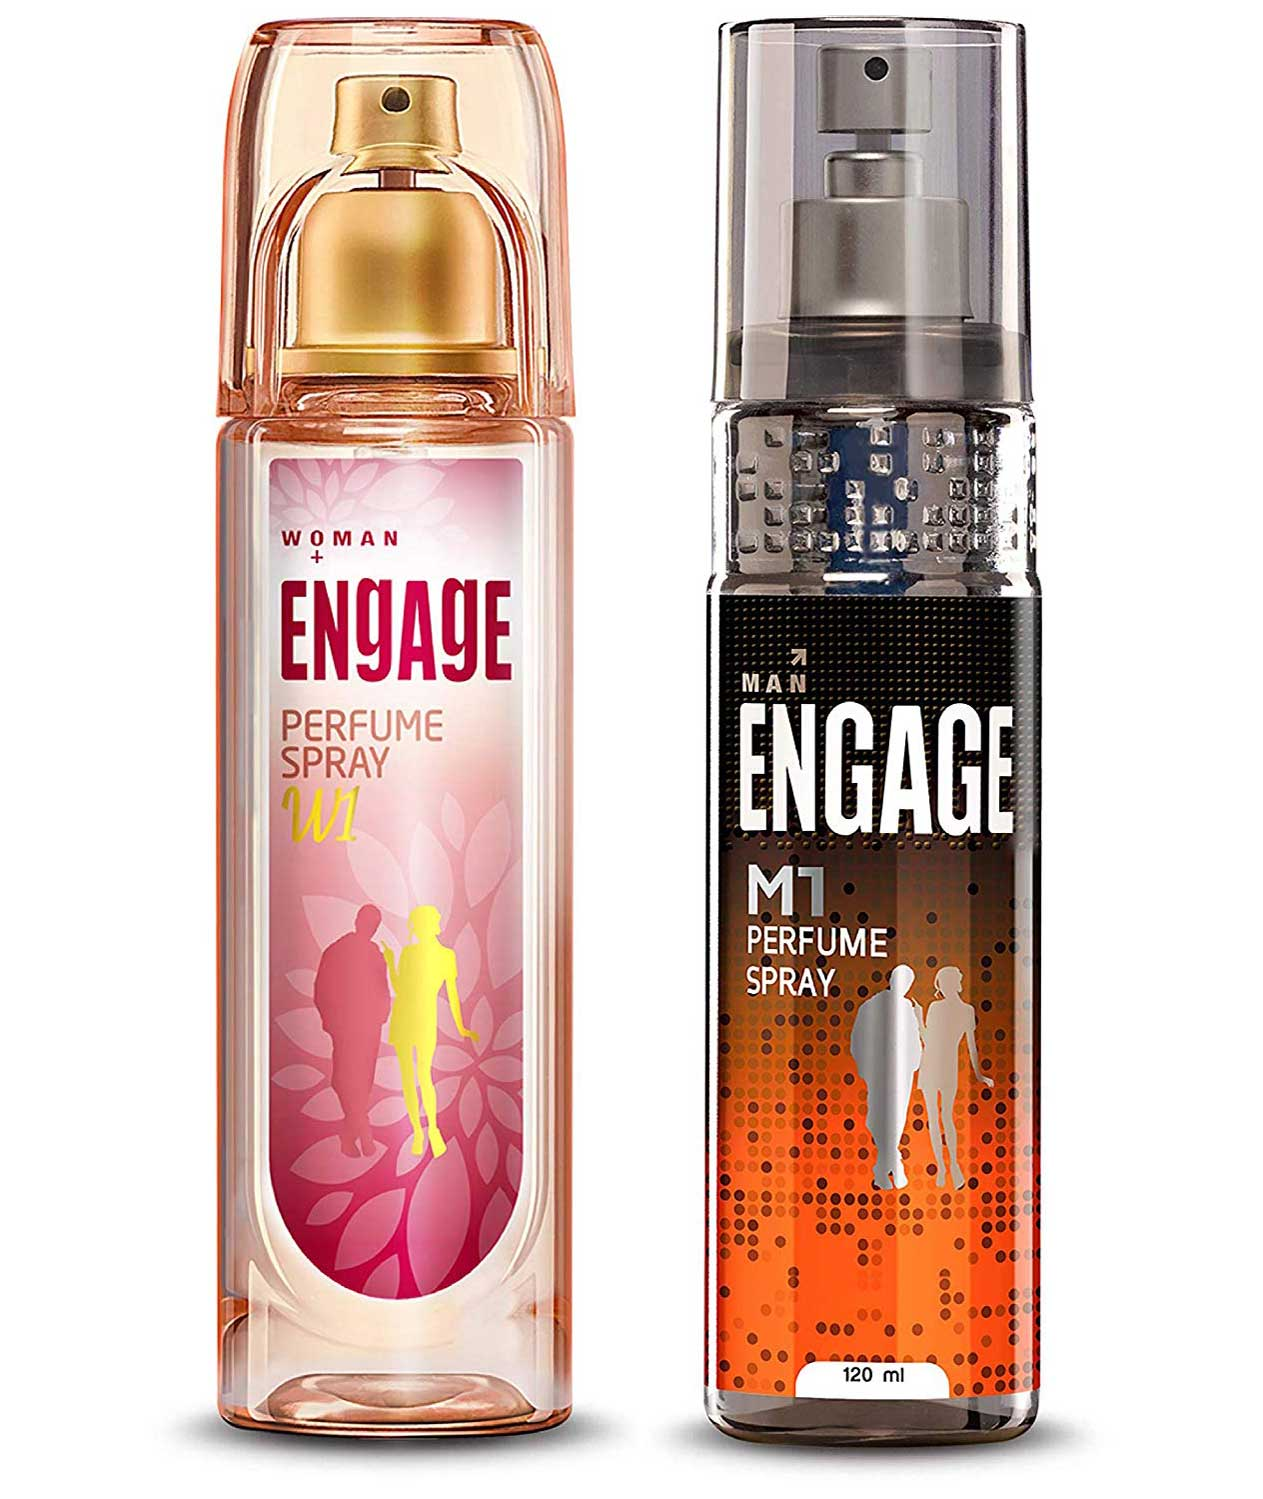 Engage W1 Perfume Spray For Women, 120ml and Engage M1 Perfume Spray For Men, 120ml